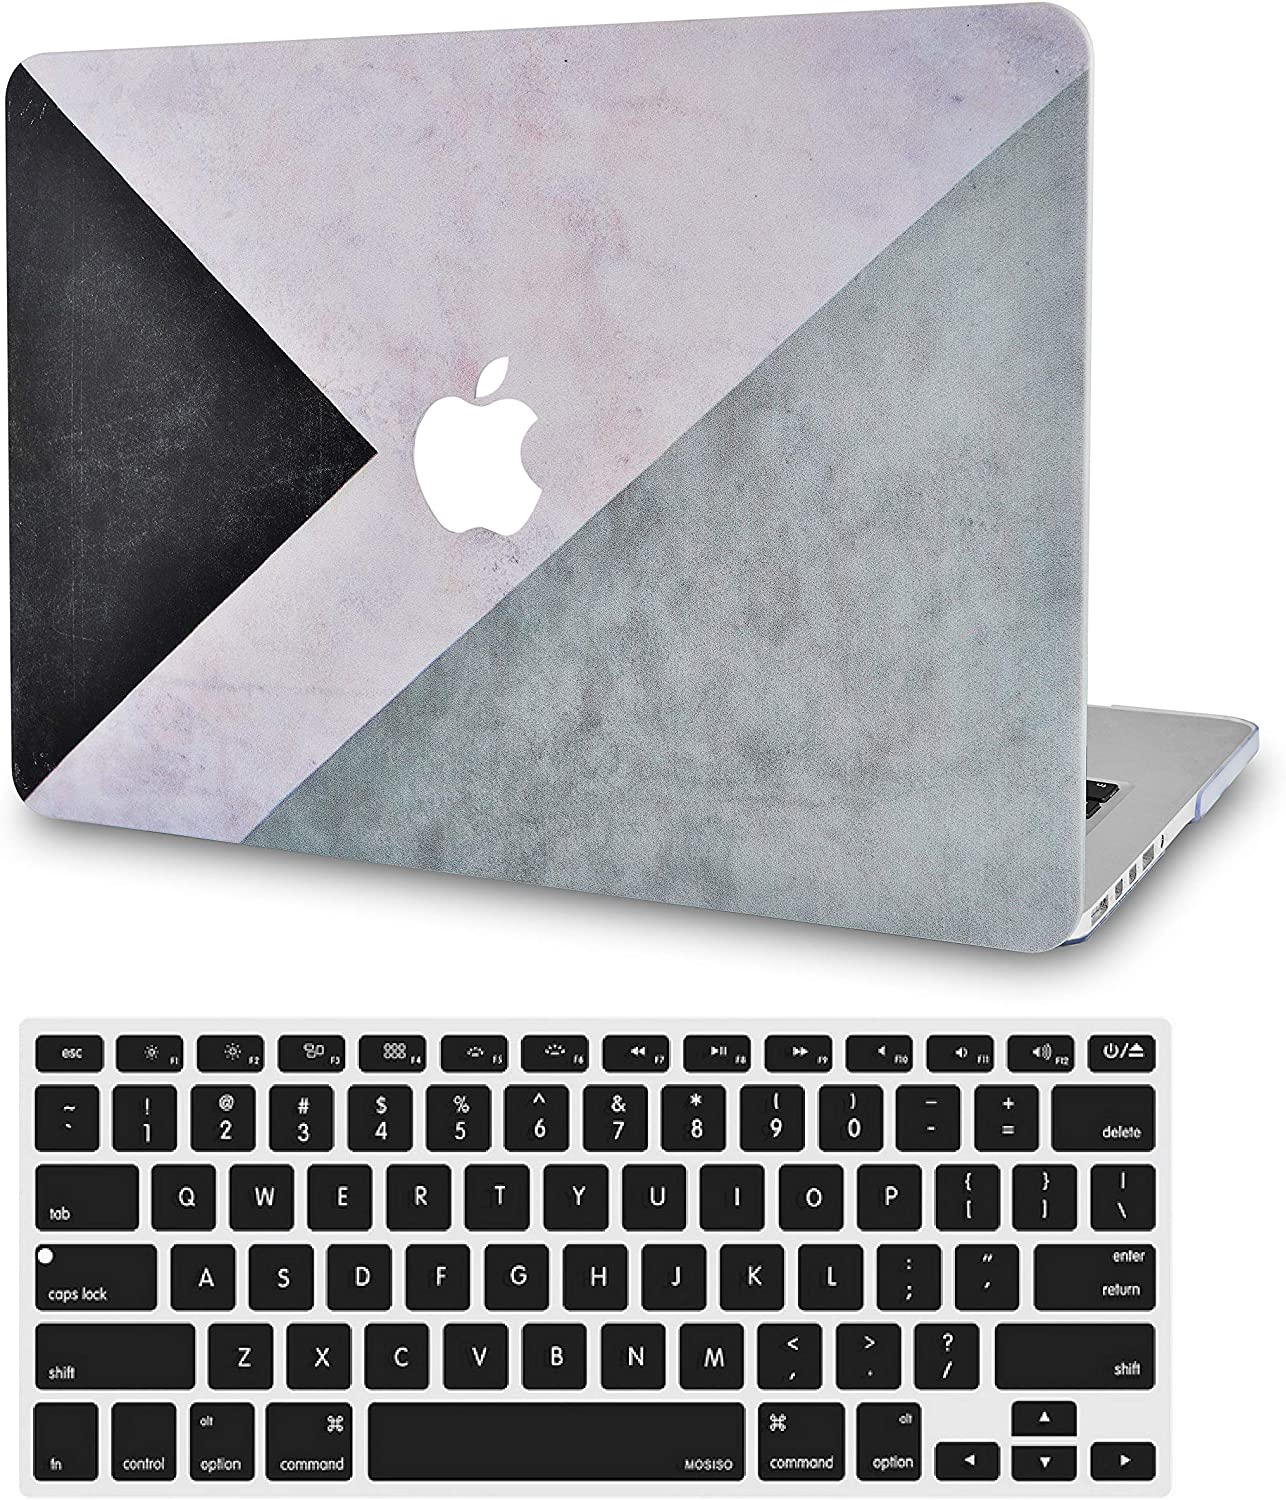 LuvCase 2 in 1 Laptop Case for MacBook Pro 15 Touch Bar (2019/2018/2017/2016) A1990/A1707 Rubberized Plastic Hard Shell Cover & Keyboard Cover (Black White Grey)